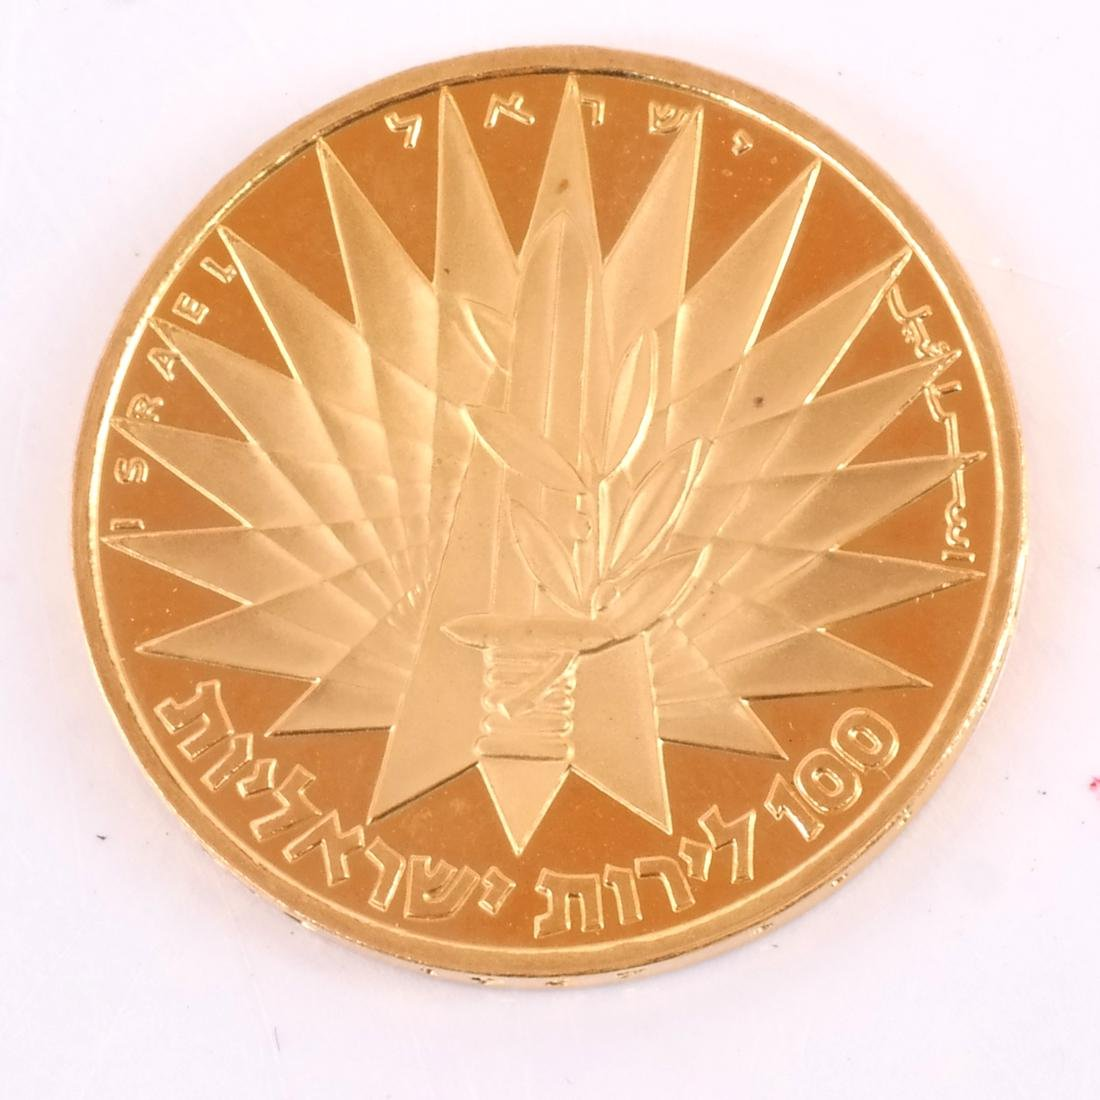 1967 Israel Gold, The Victory Coin